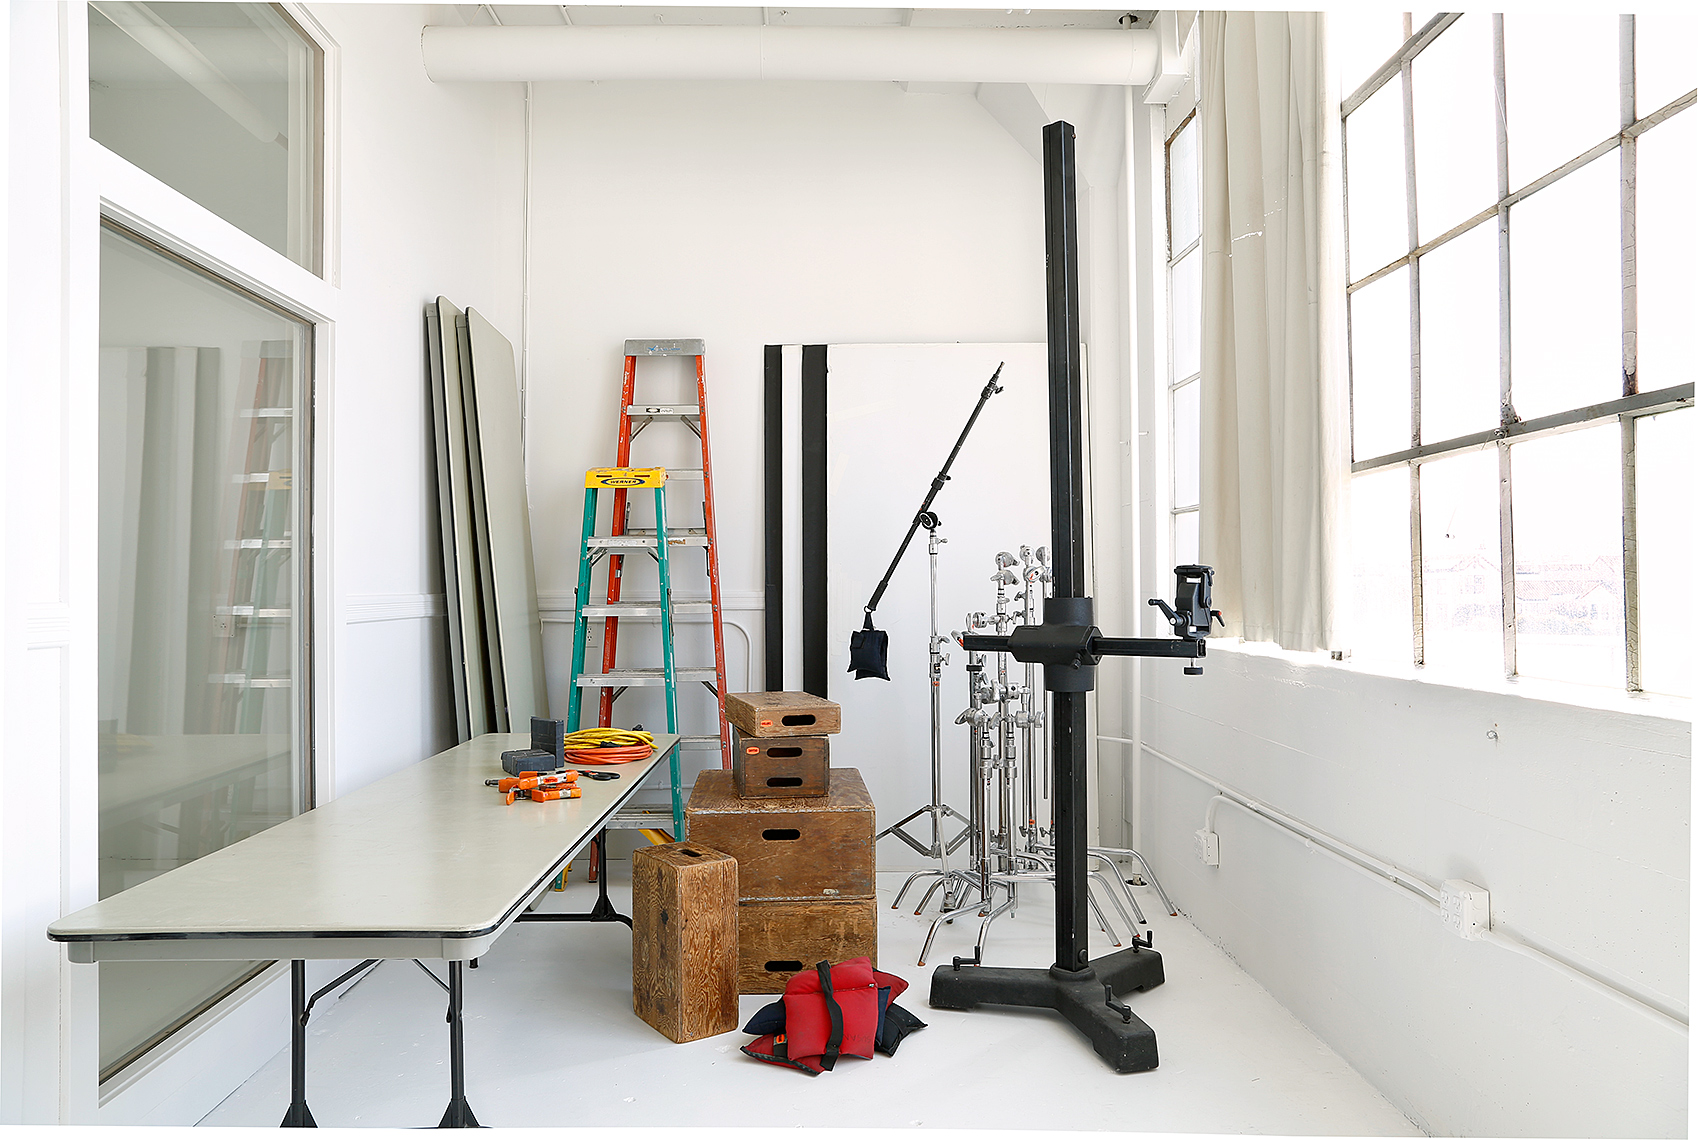 Photography Studio Rental San Francisco Bay Area Daylight